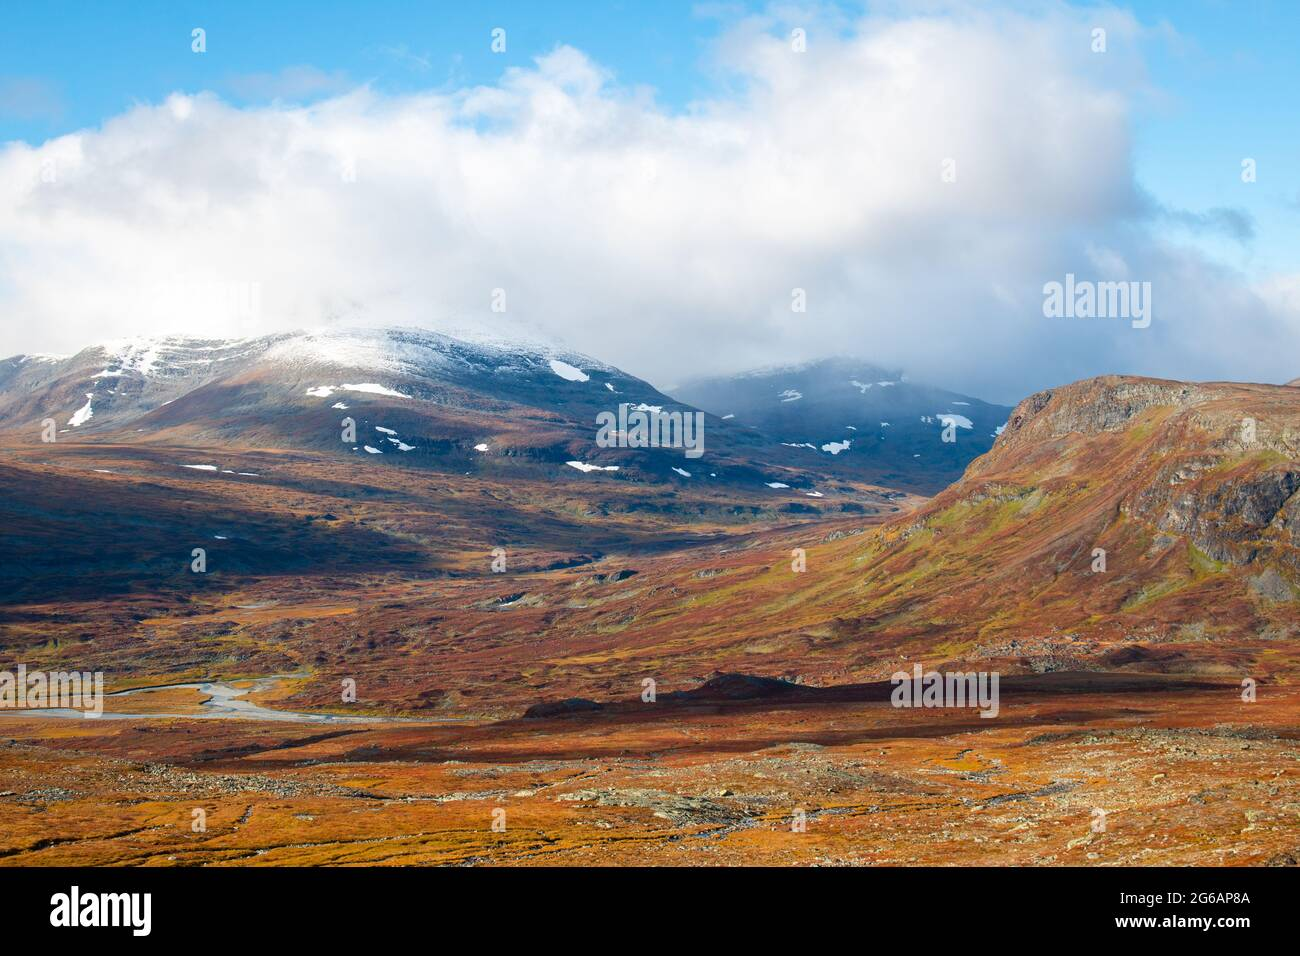 Mountains around Kungsleden trail on a shortcut between Salka and Kebnekaise, Swedish Lapland, mid-September, 2020 Stock Photo